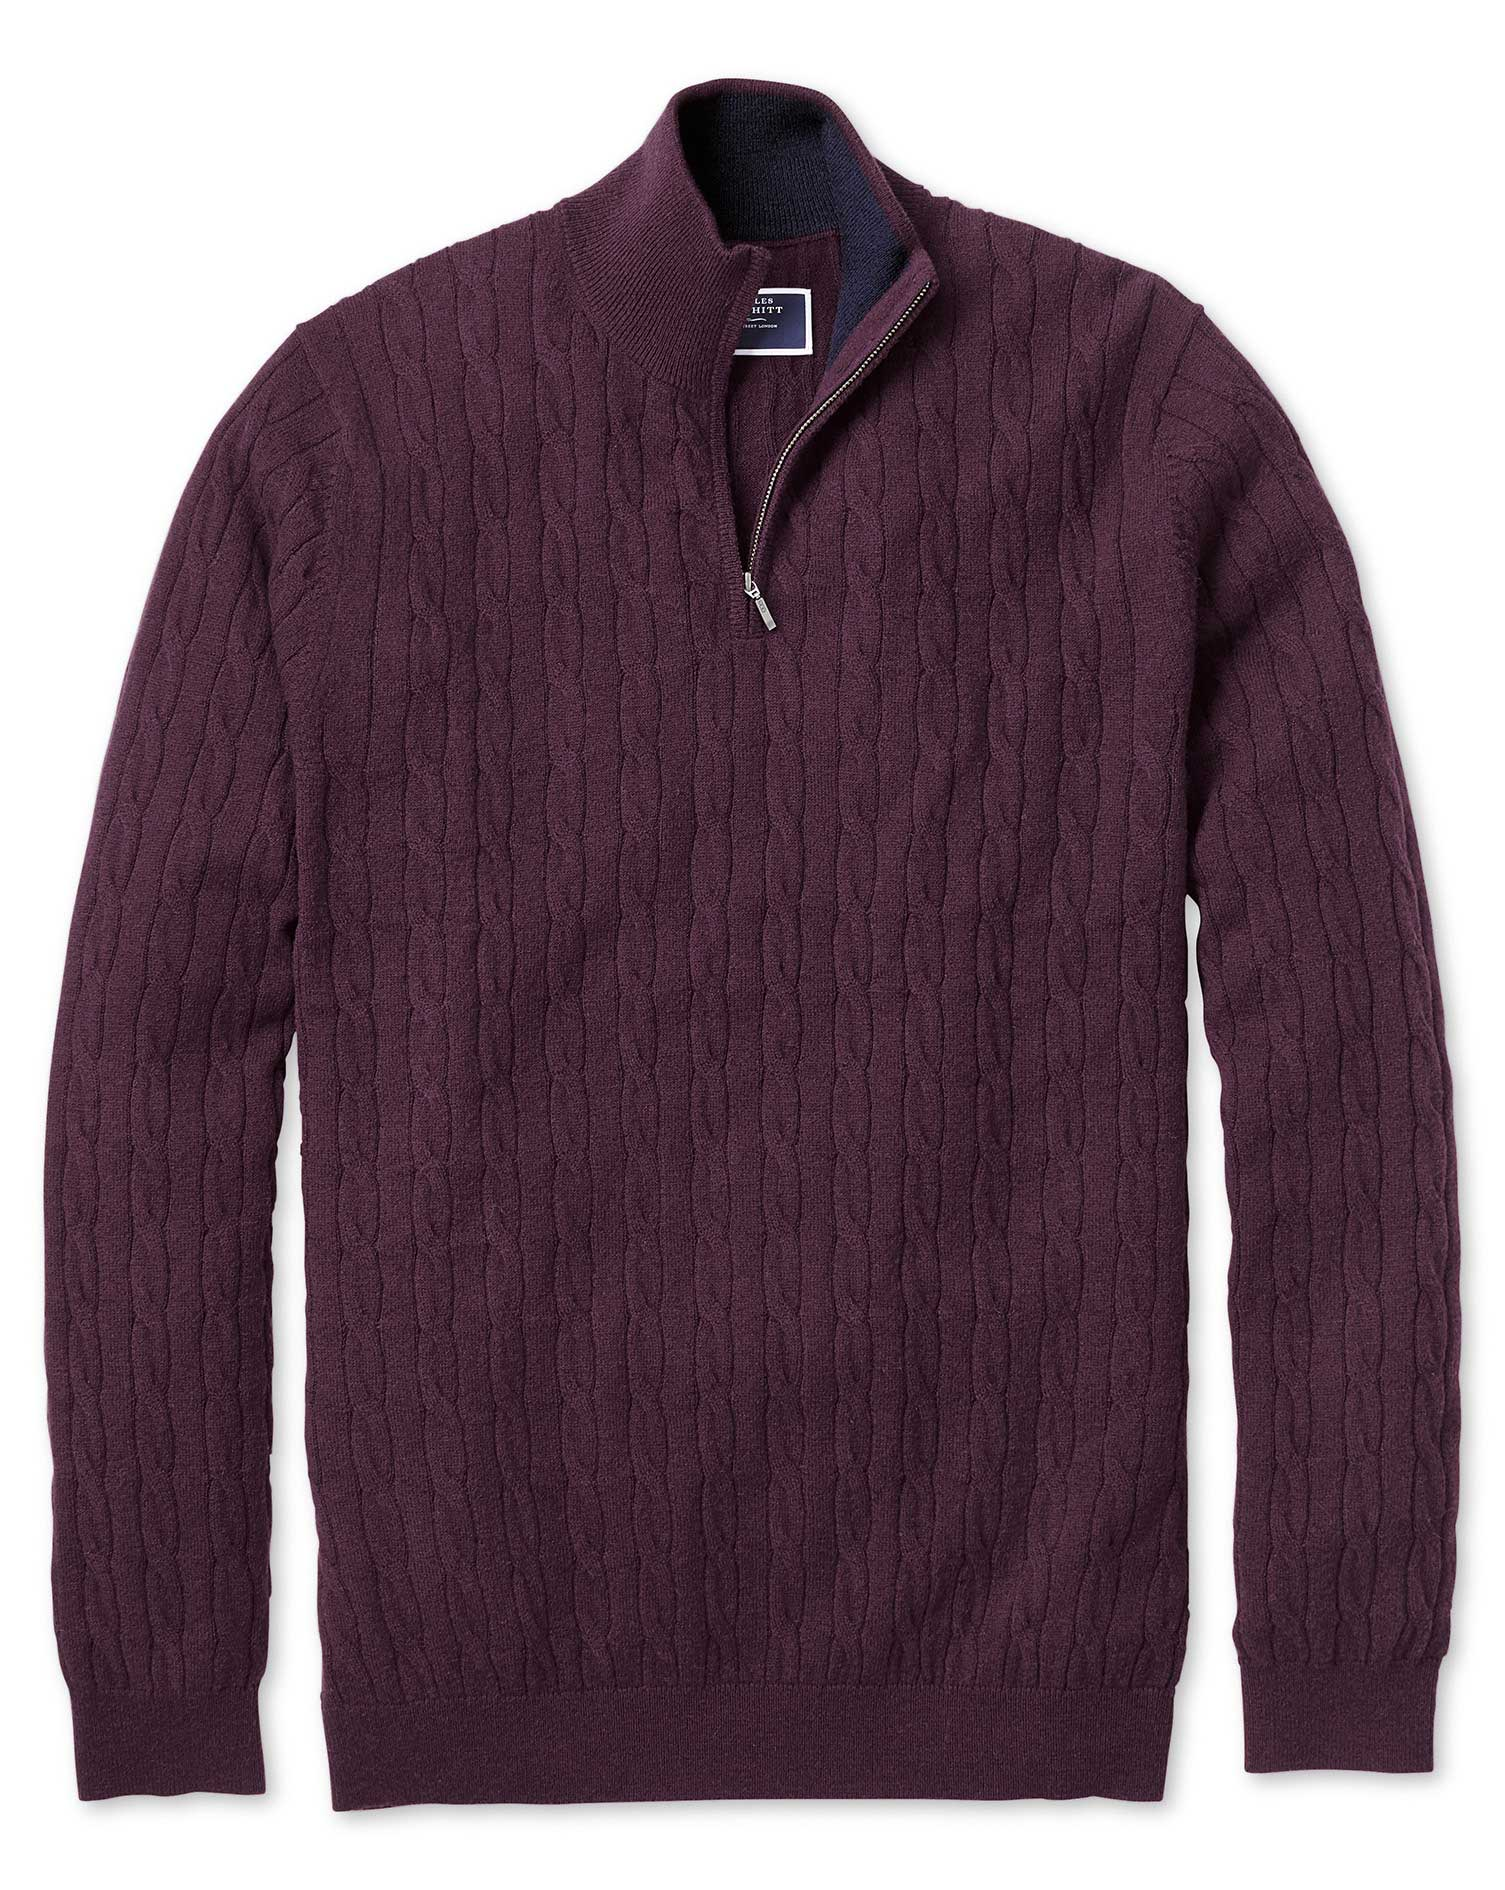 Wine Zip Neck Lambswool Cable Knit Jumper Size XXXL by Charles Tyrwhitt